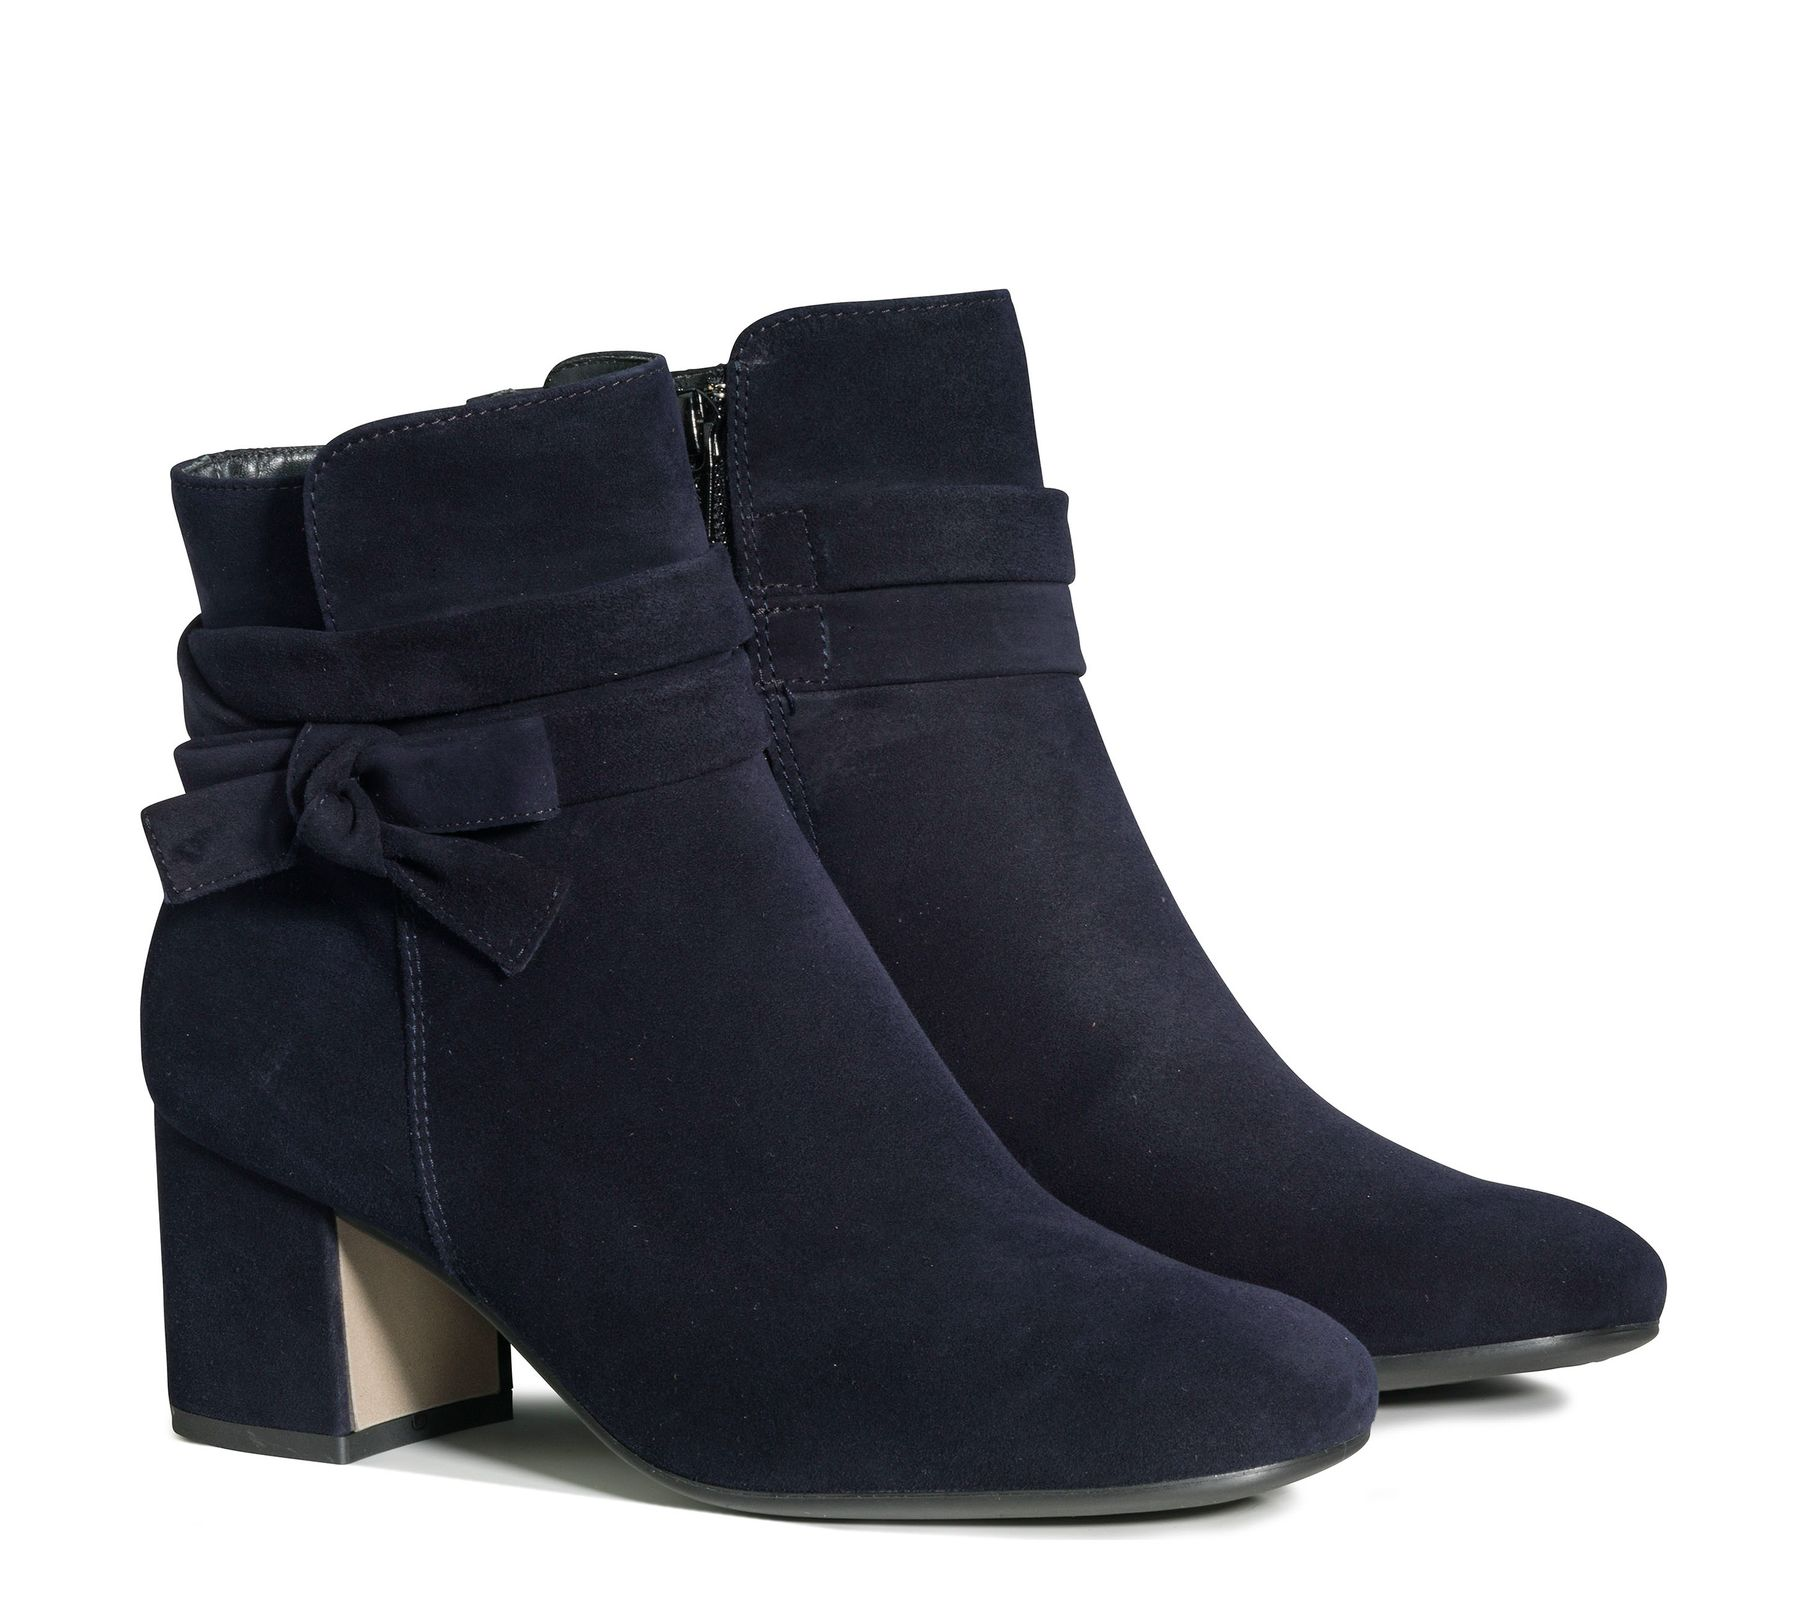 Paul Green Ankle BOOTS playful ankle boots CYCPYKS